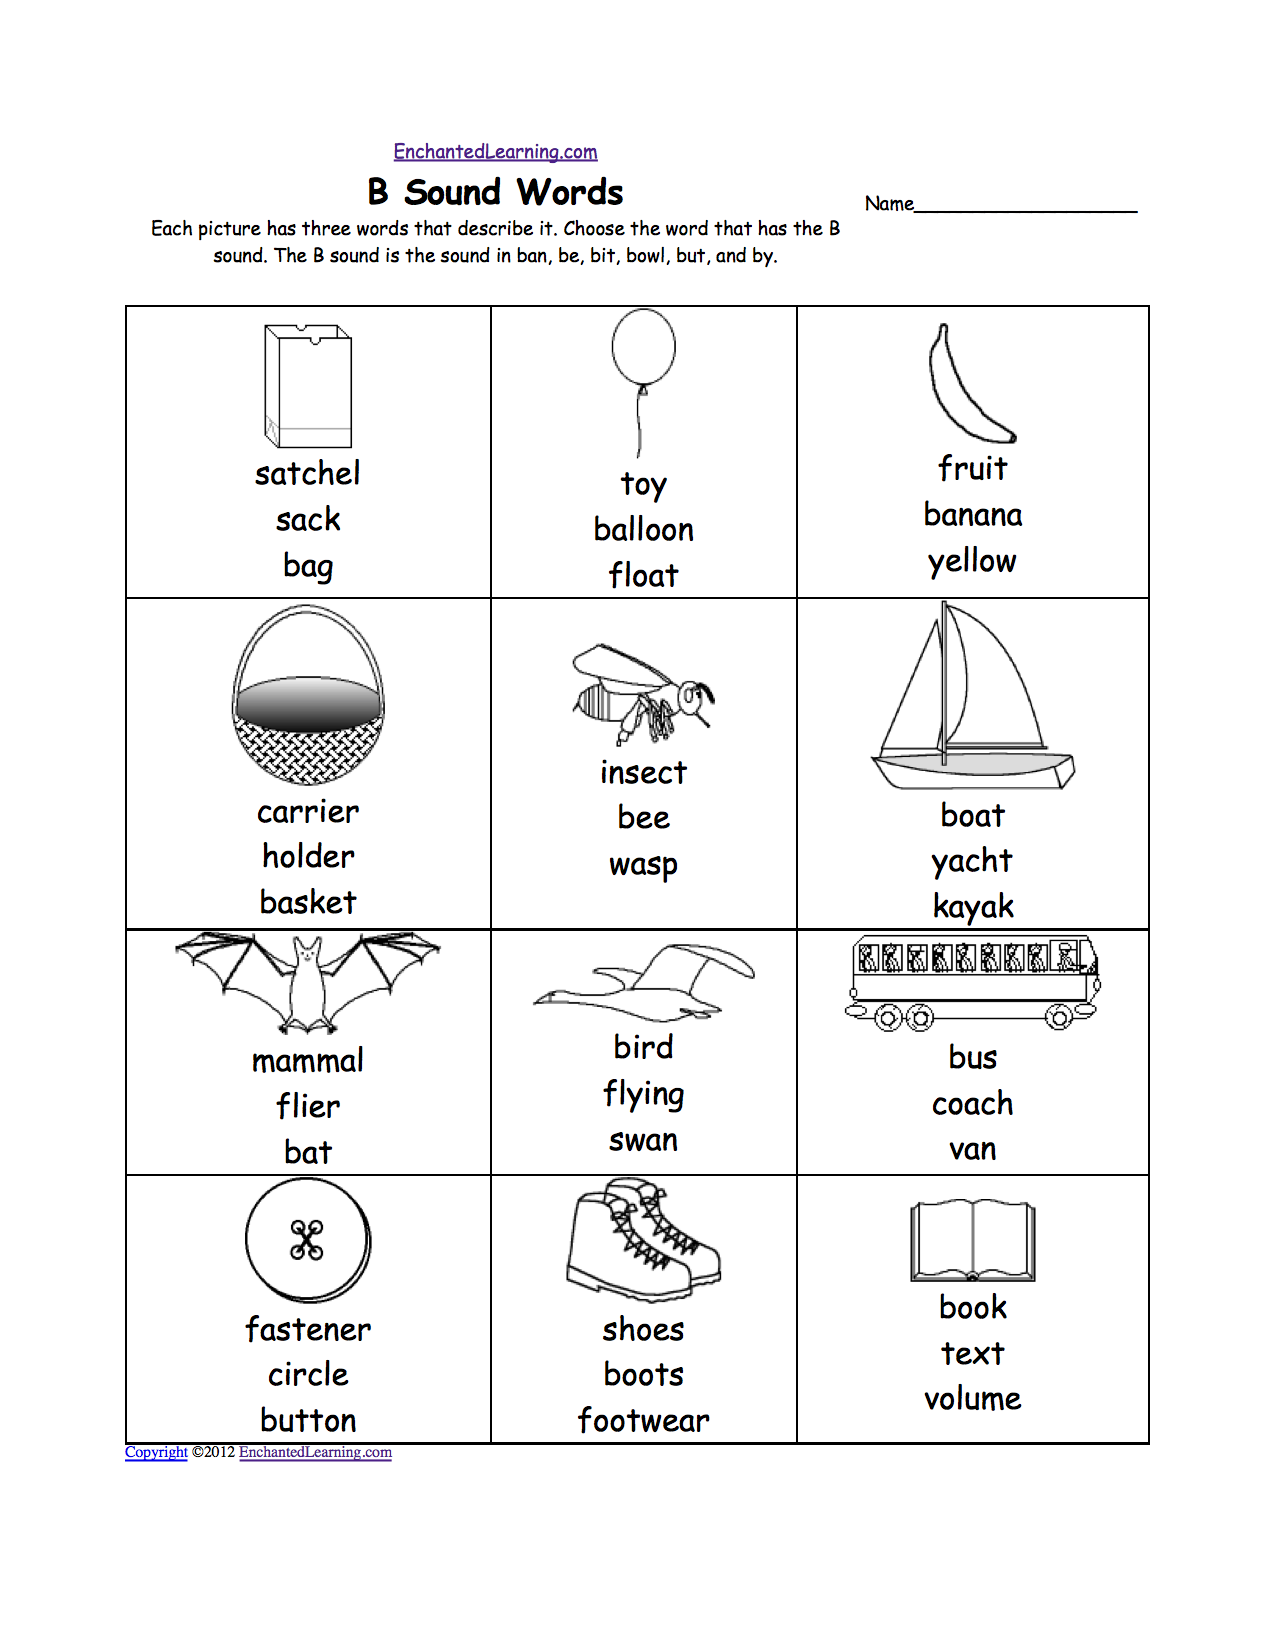 Aldiablosus  Splendid Phonics Worksheets Multiple Choice Worksheets To Print  With Heavenly Quotbquot Sound Phonics Worksheet Multiple Choice Each Picture Has Three Words That Describe It Choose The Word That Has A Quotbquot Sound The Quotbquot Sound Is The Sound  With Alluring Lined Worksheets Also Comparing Two Digit Numbers Worksheets In Addition Free English Comprehension Worksheets For Grade  And Past Simple Vs Present Perfect Worksheet As Well As Common Fractions Worksheets Additionally Sorting Shapes Worksheet From Enchantedlearningcom With Aldiablosus  Heavenly Phonics Worksheets Multiple Choice Worksheets To Print  With Alluring Quotbquot Sound Phonics Worksheet Multiple Choice Each Picture Has Three Words That Describe It Choose The Word That Has A Quotbquot Sound The Quotbquot Sound Is The Sound  And Splendid Lined Worksheets Also Comparing Two Digit Numbers Worksheets In Addition Free English Comprehension Worksheets For Grade  From Enchantedlearningcom